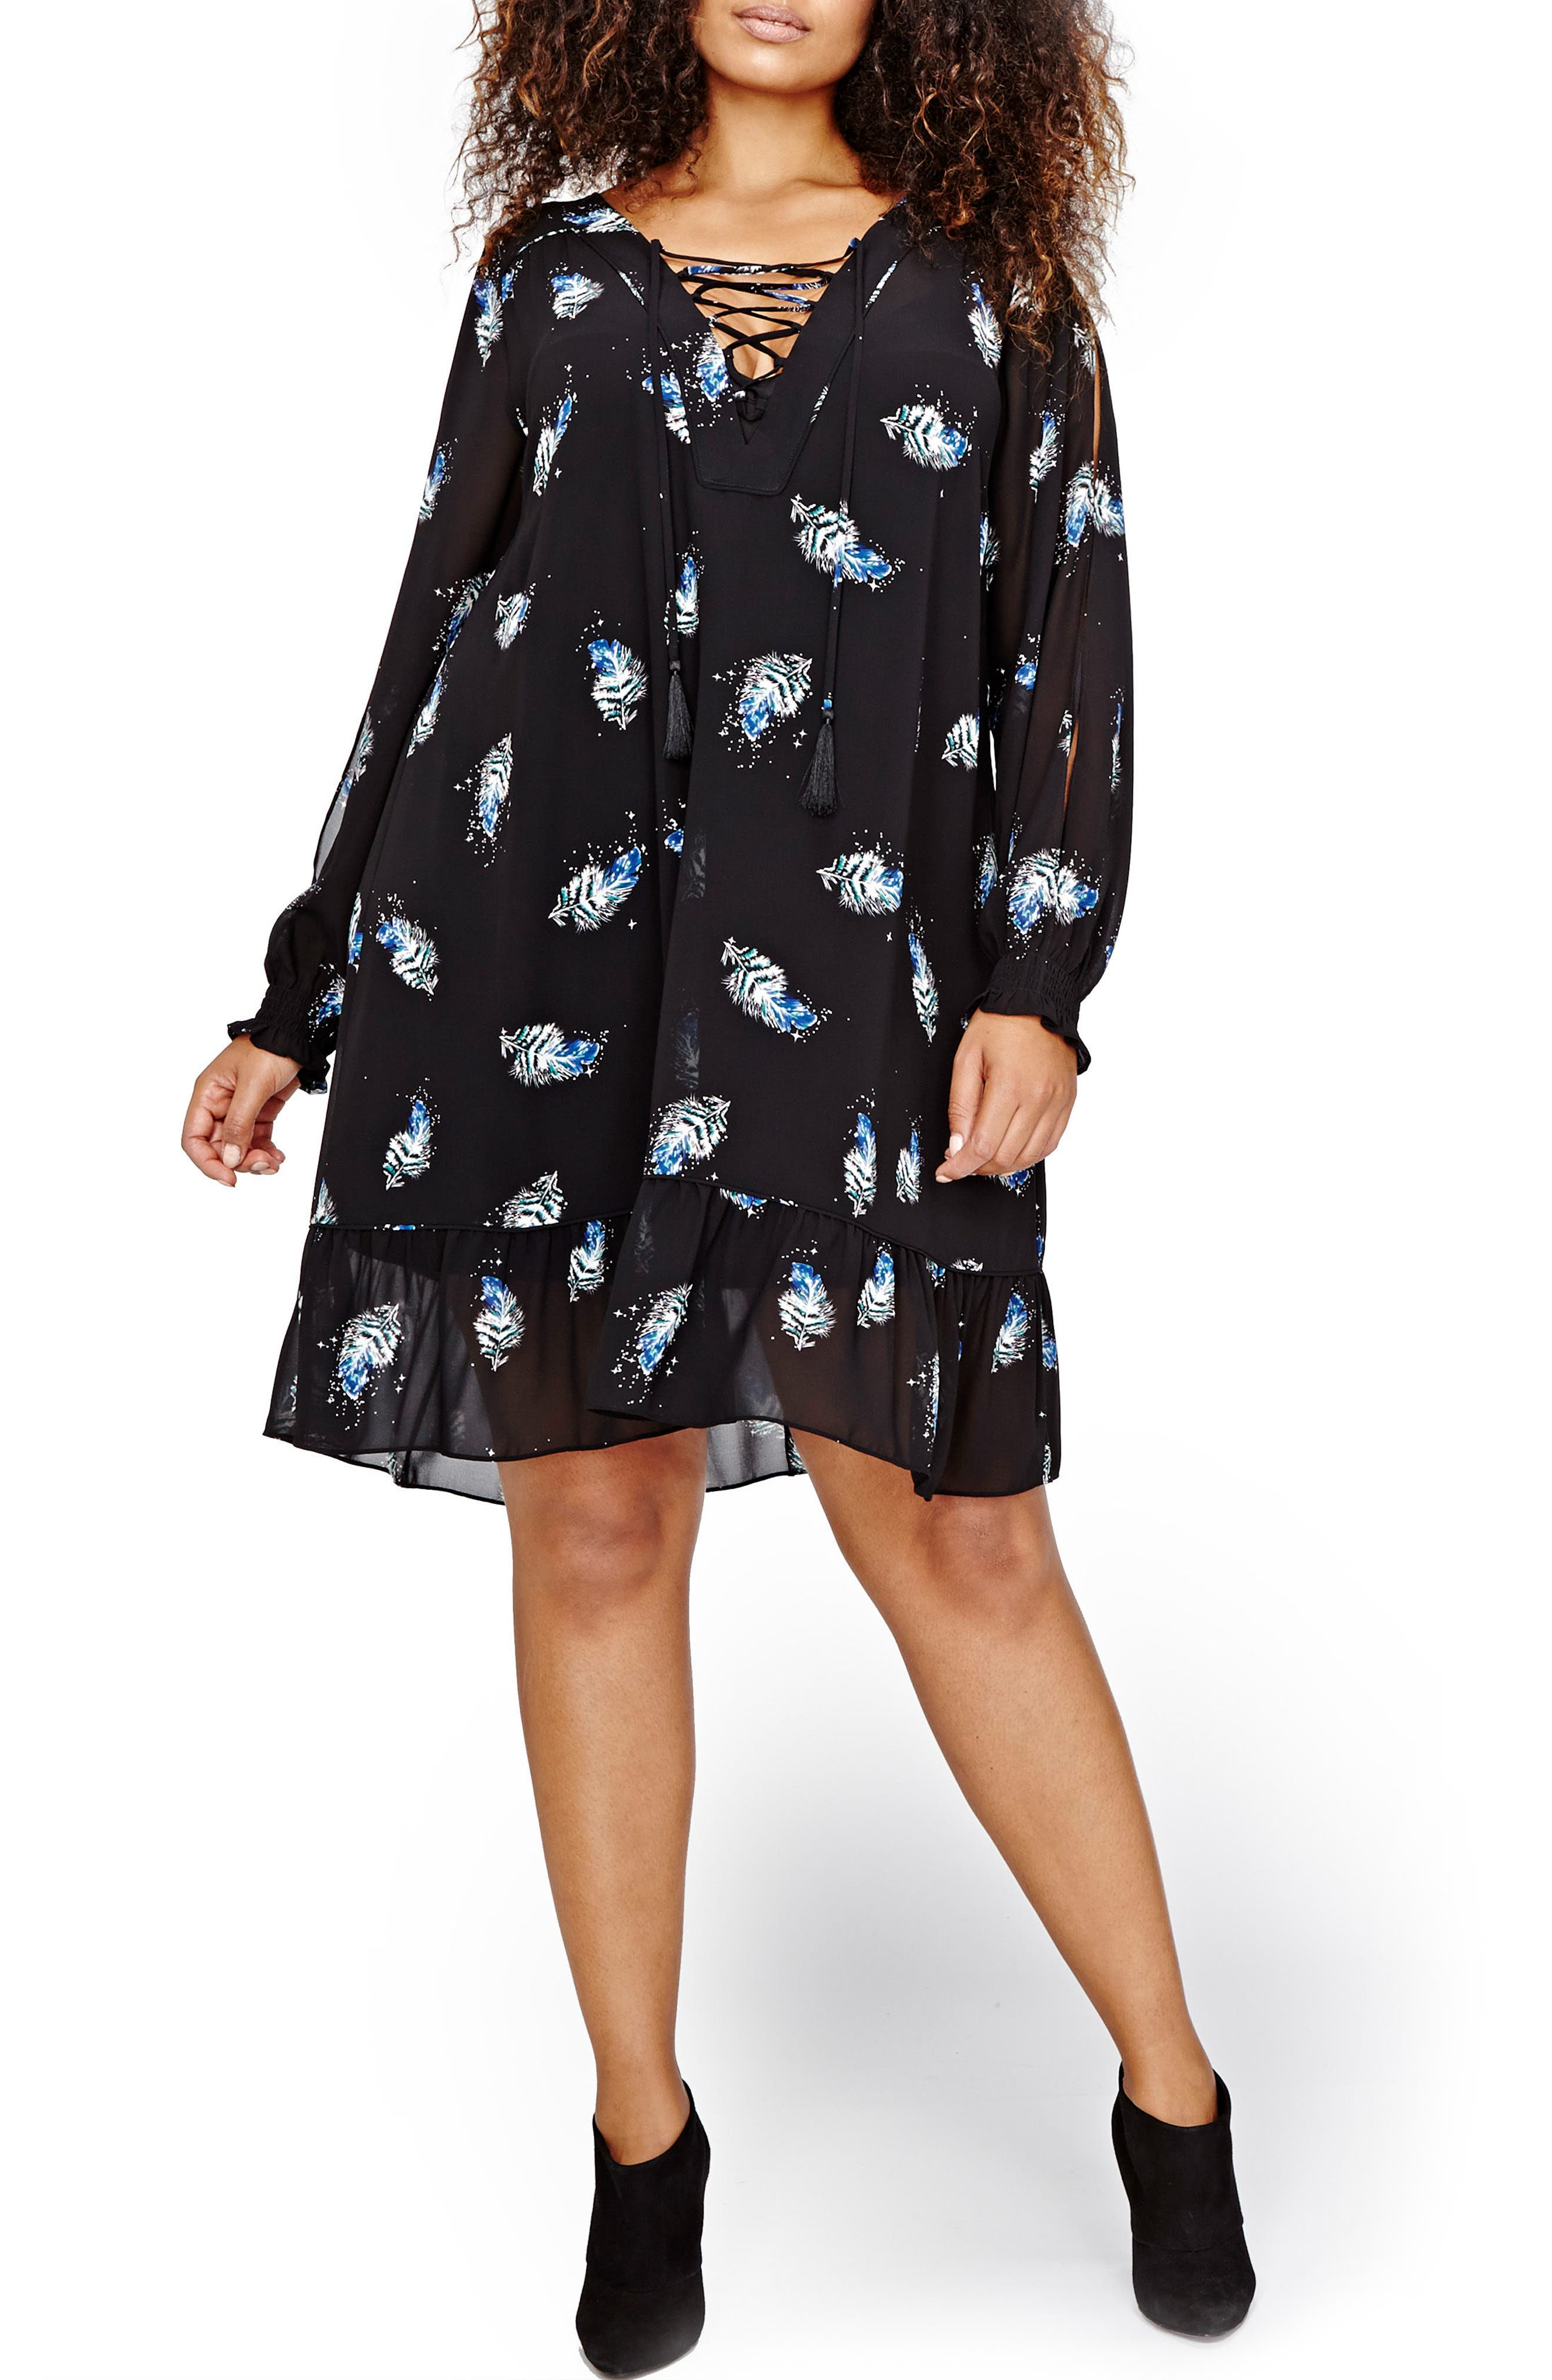 Alternate Image 1 Selected - ADDITION ELLE LOVE AND LEGEND Lace-Up Print Dress (Plus Size)